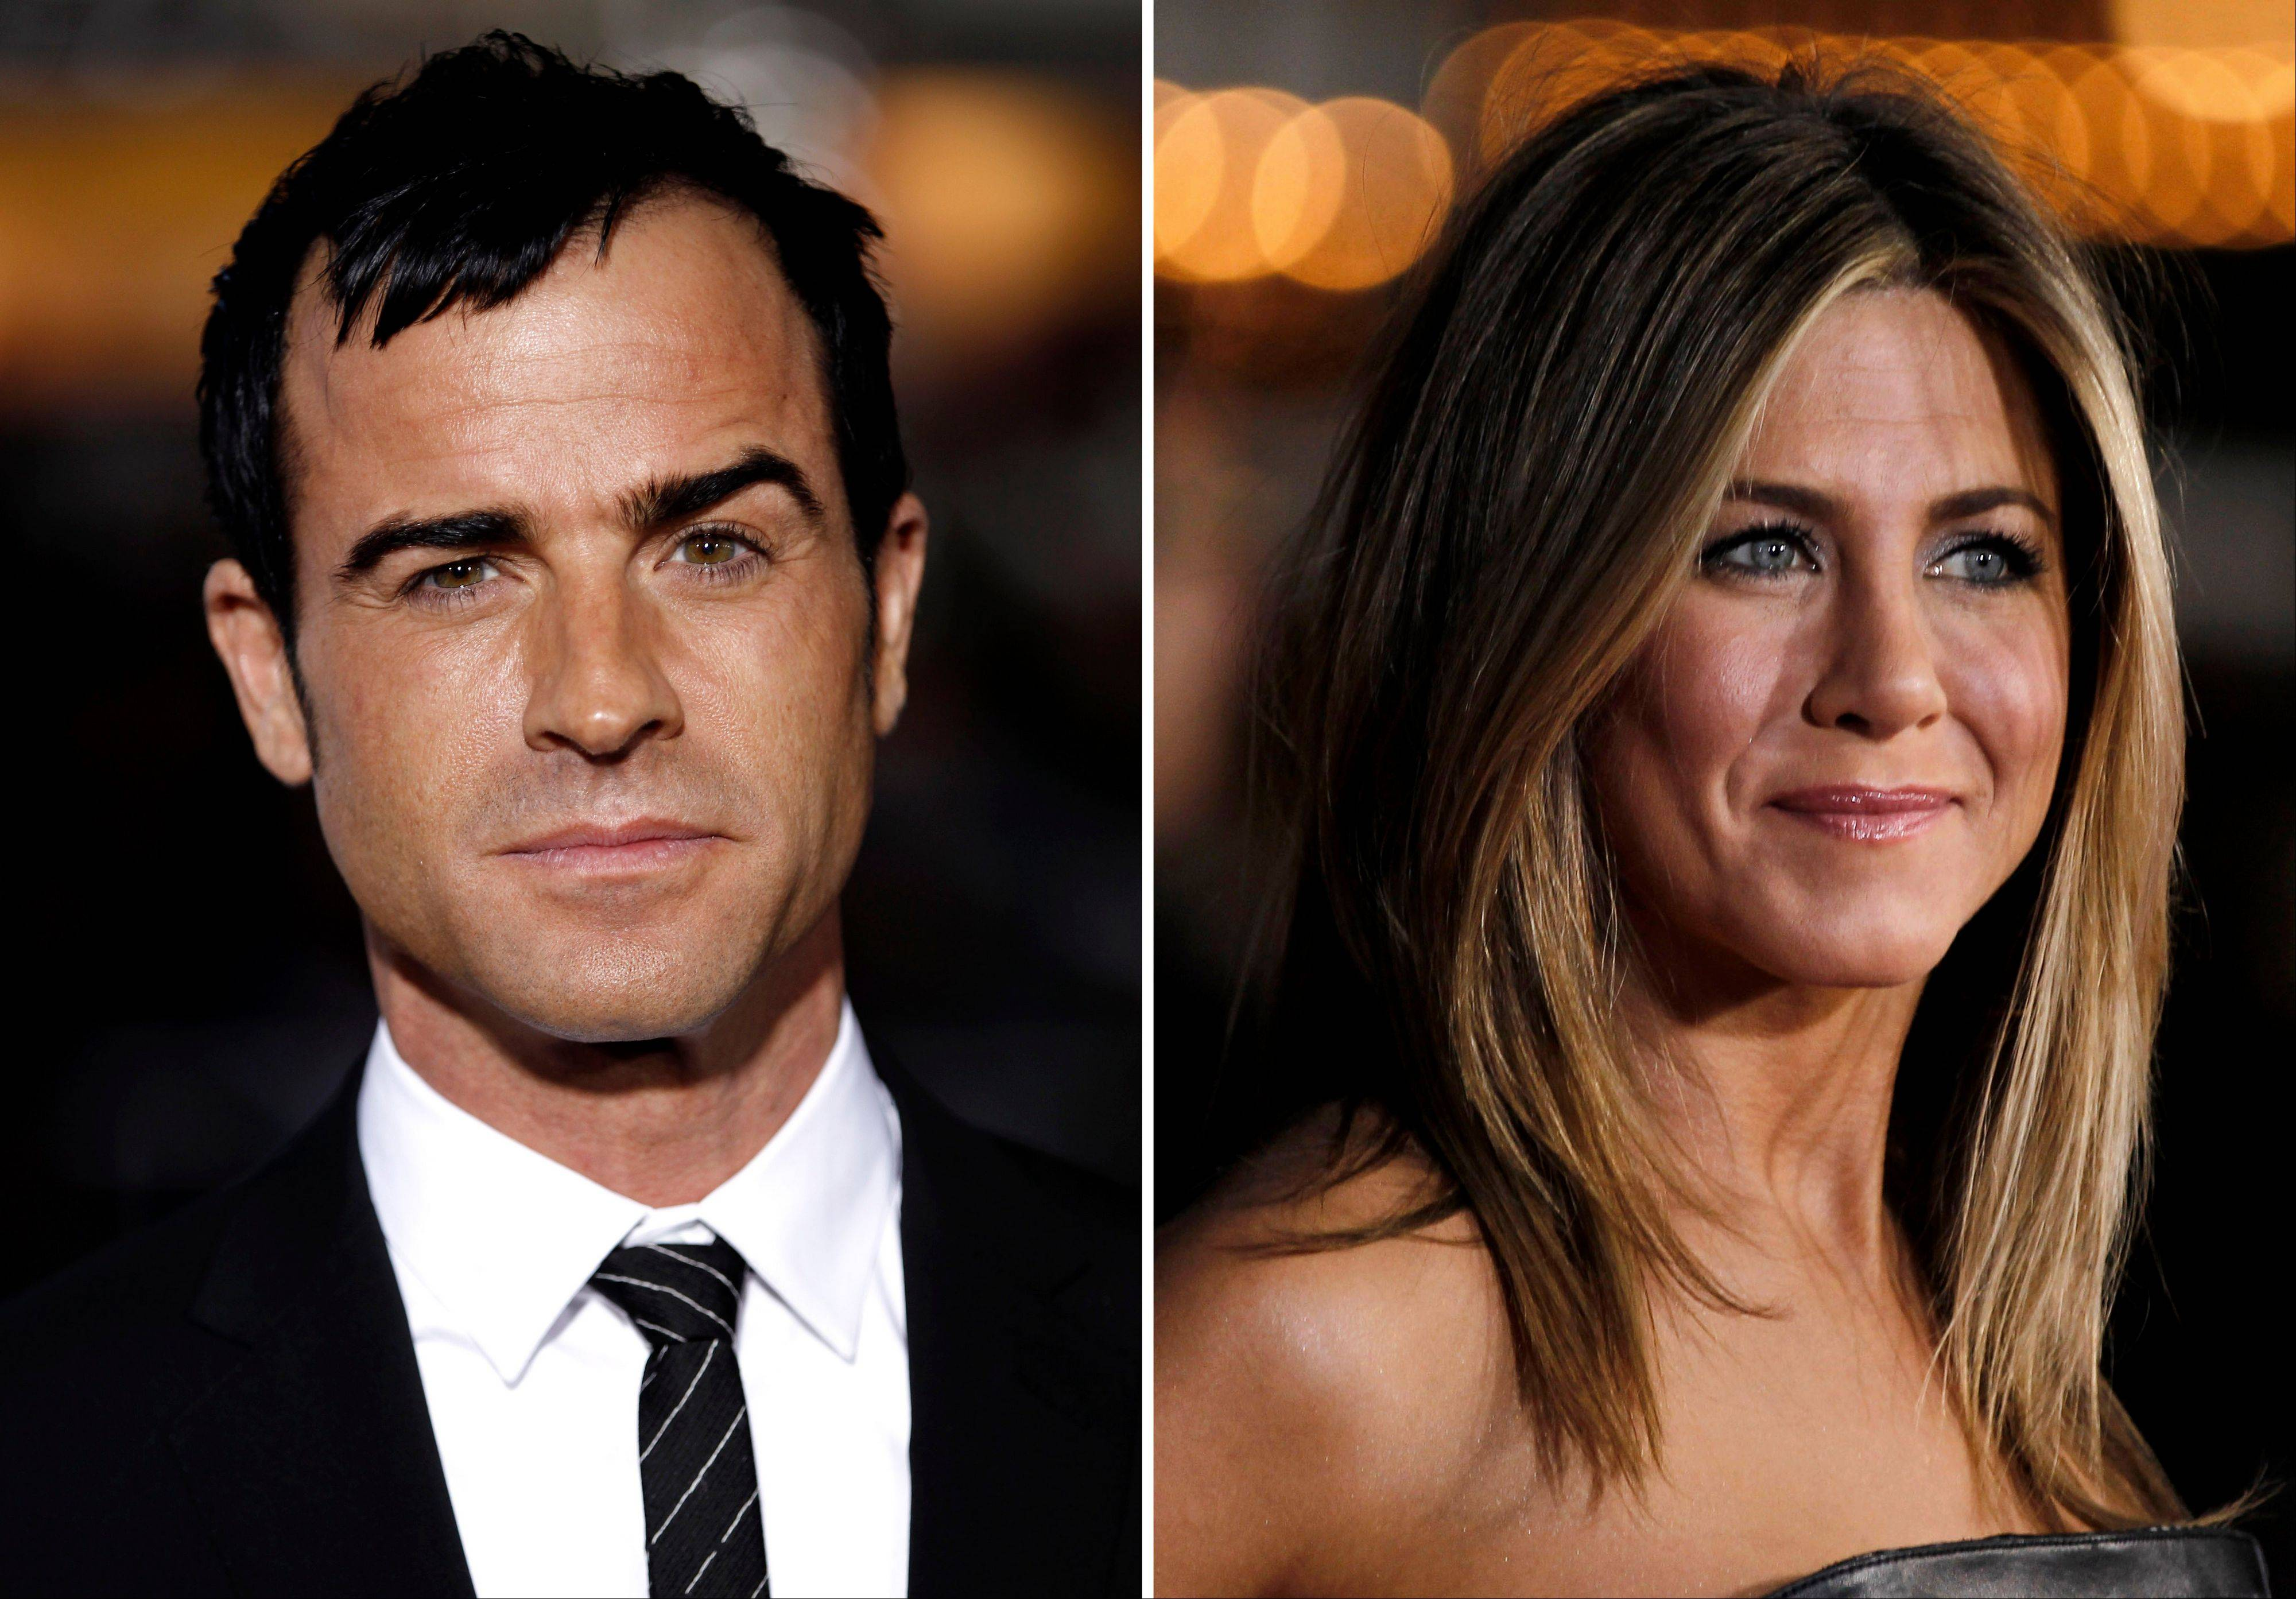 Actors Justin Theroux and Jennifer Aniston have announced their engagement. The pair, who have been dating for a year, became engaged on Friday after Theroux popped the question on his birthday.